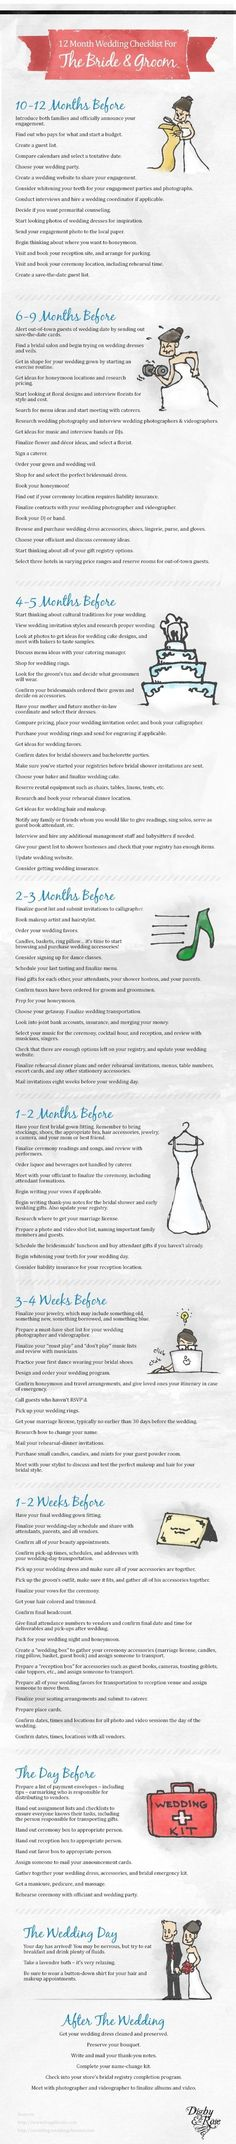 12 month wedding planning checklist!!!!